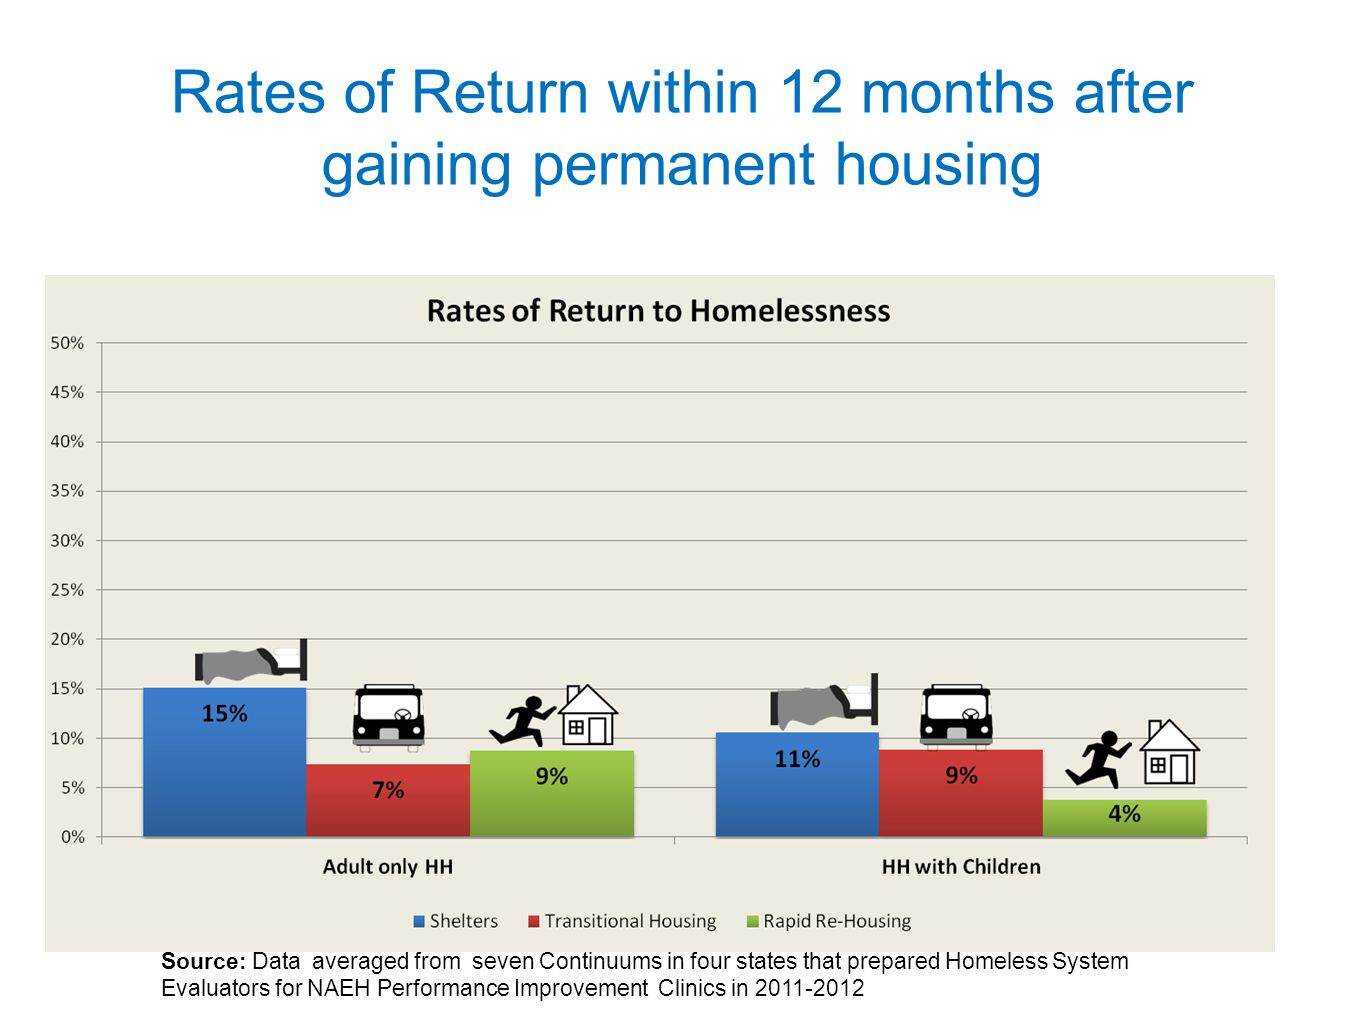 Rates of Return within 12 months after gaining permanent housing Source: Data averaged from seven Continuums in four states that prepared Homeless System Evaluators for NAEH Performance Improvement Clinics in 2011-2012